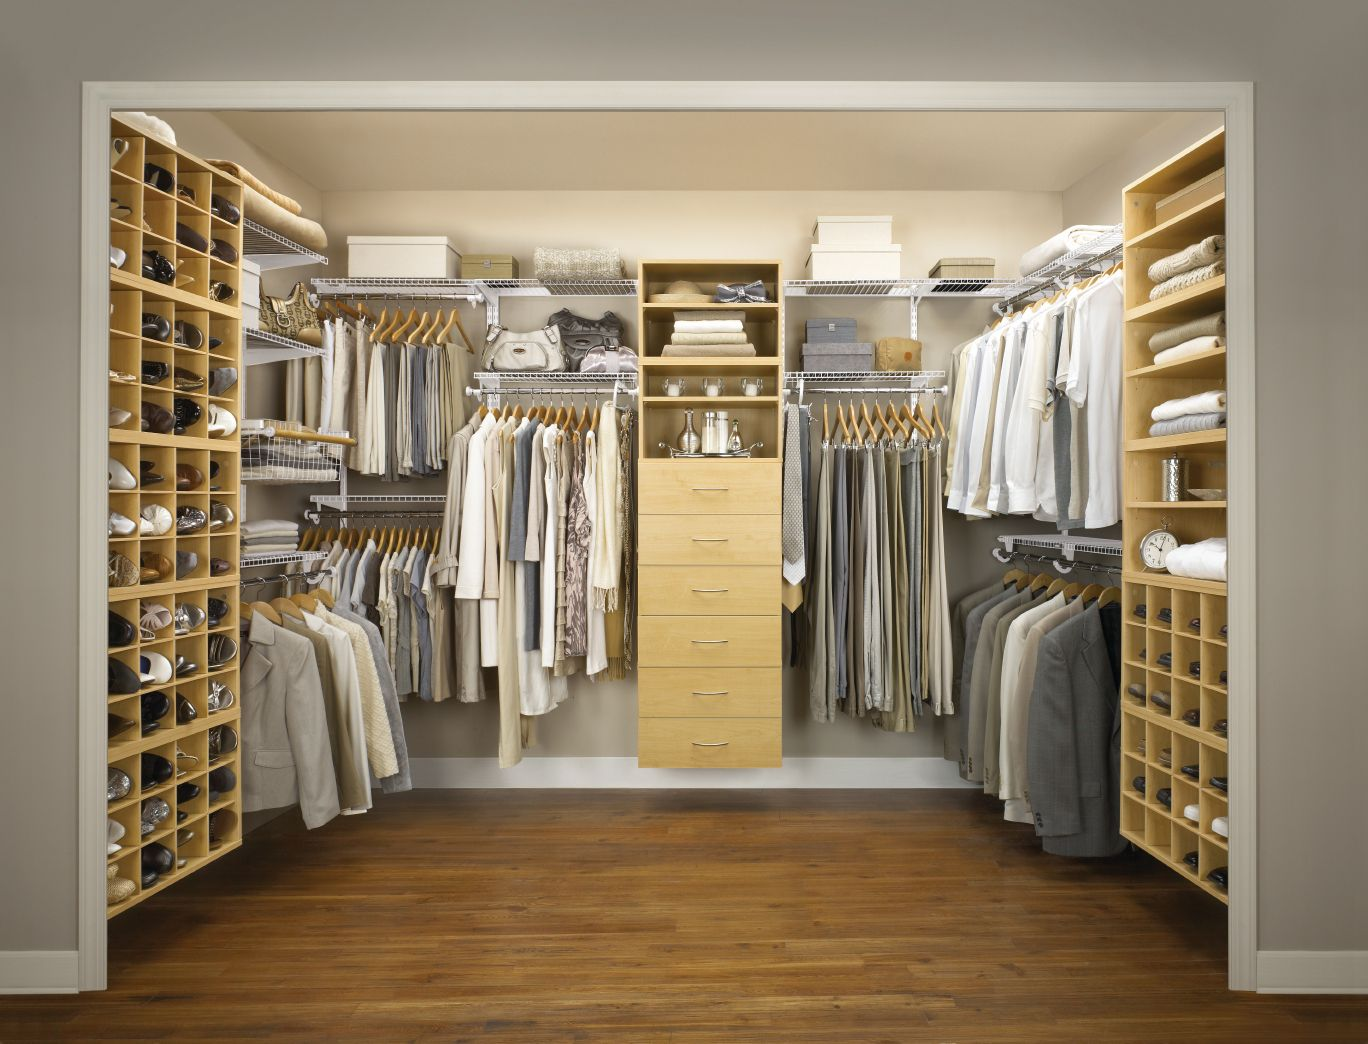 Wondrous Shoes Racks also Drawers Plus Hanging Clothes For Decorating Closet